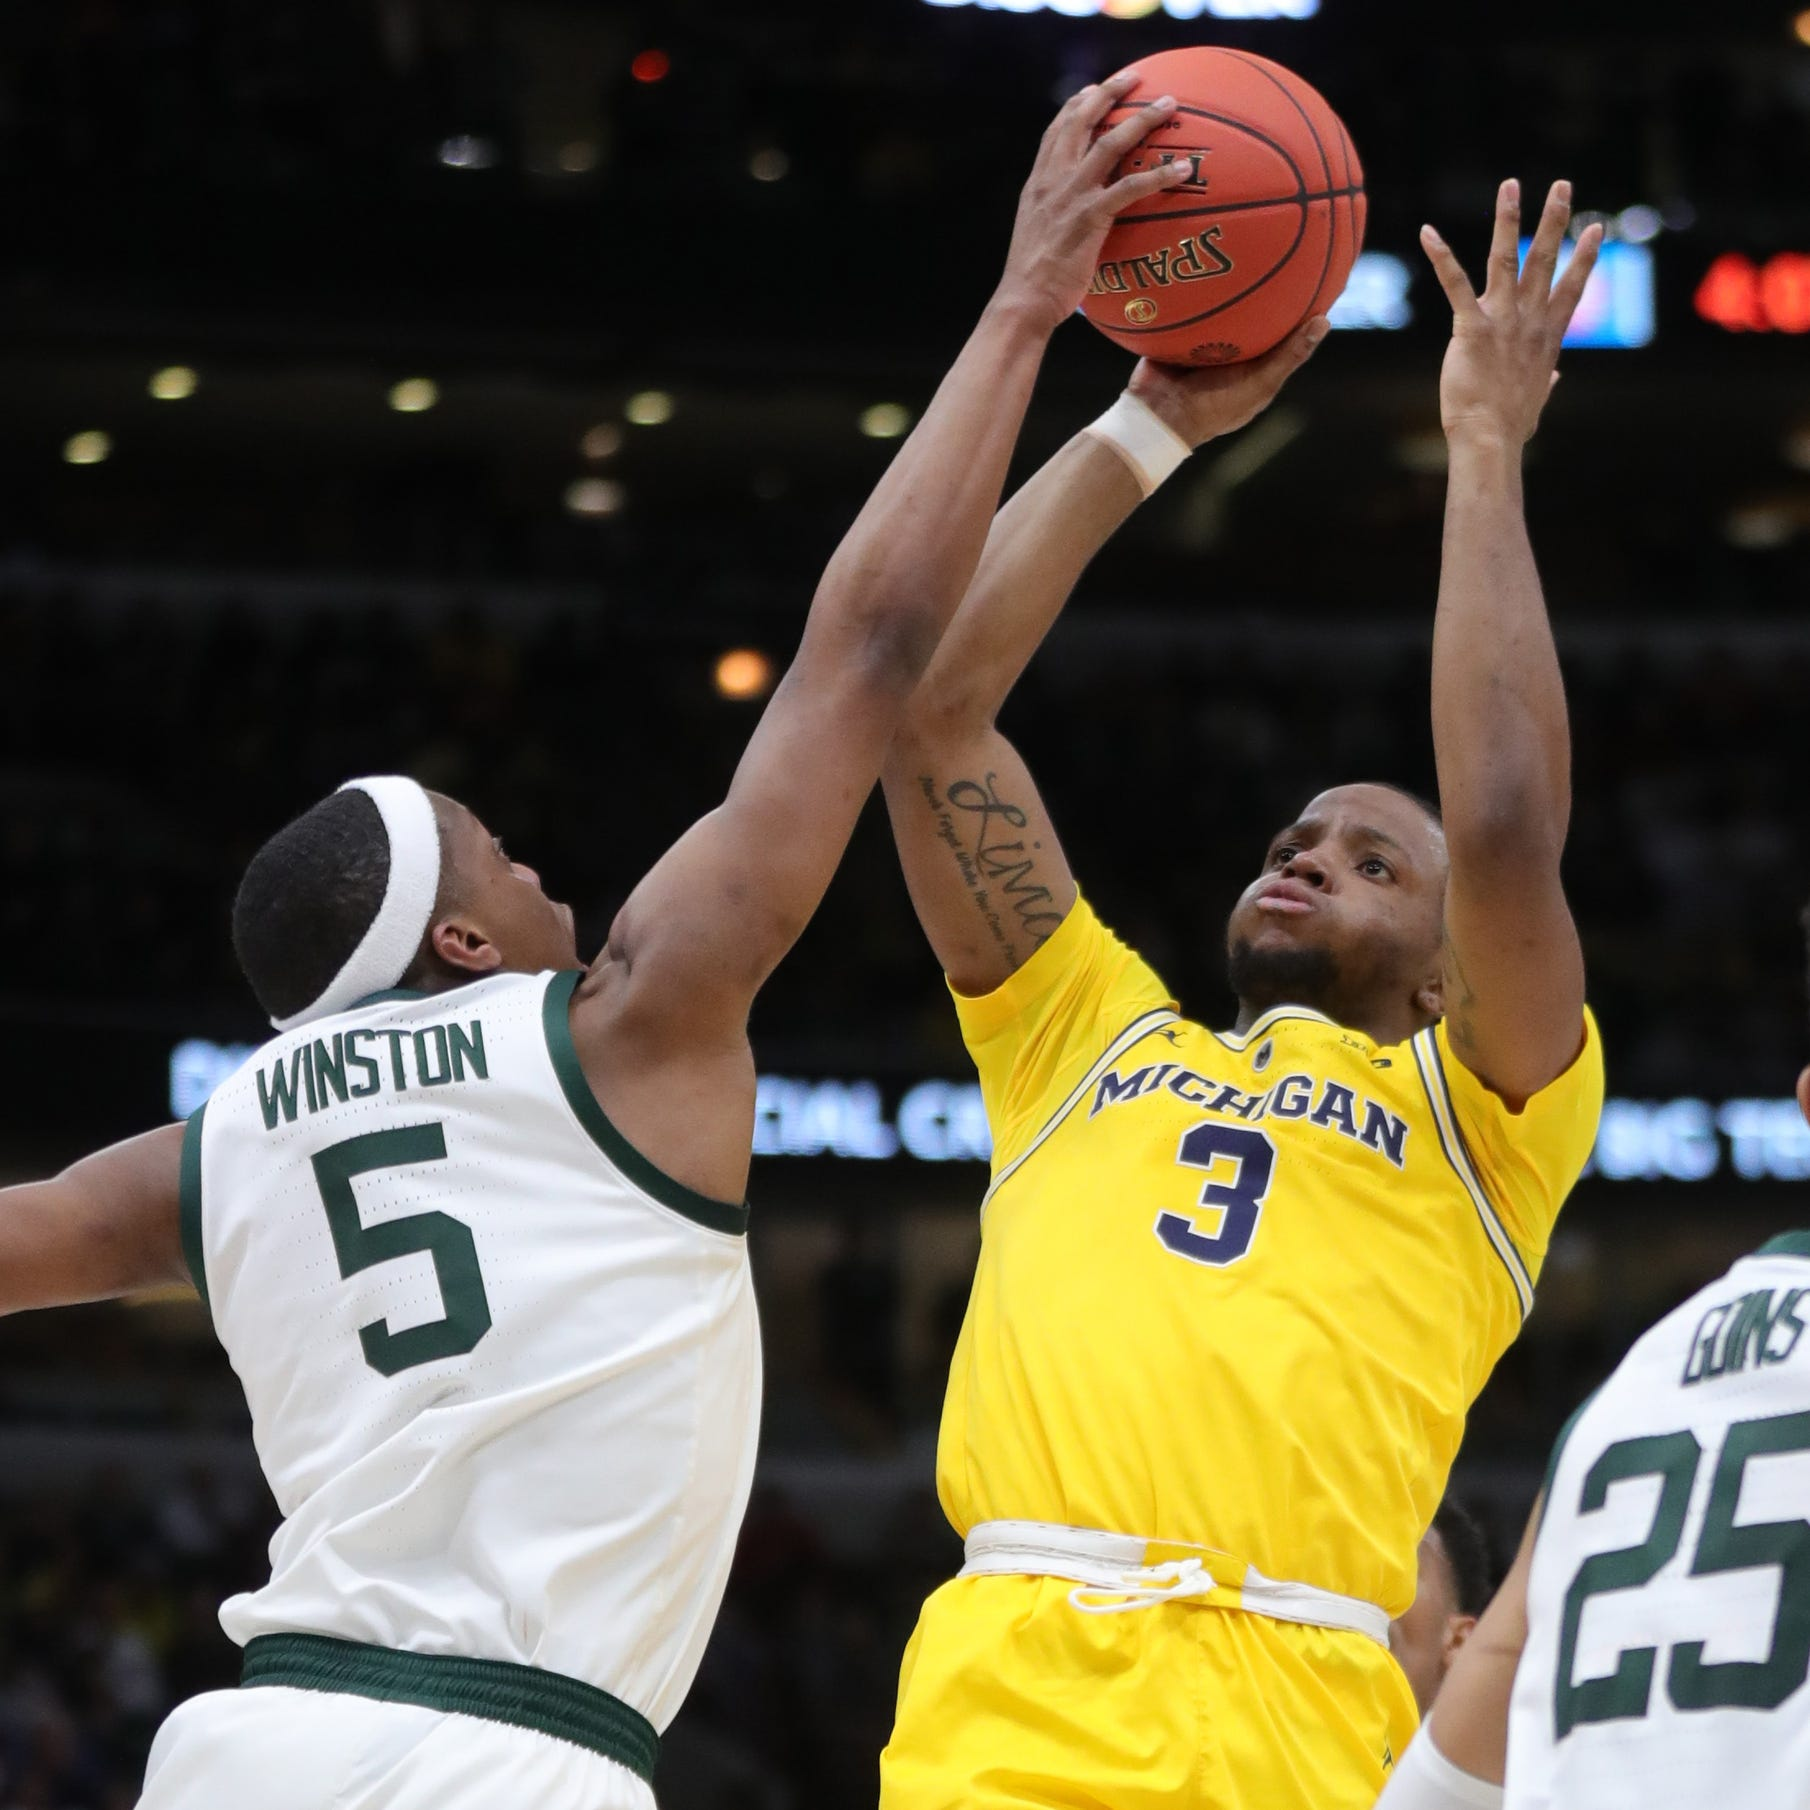 Made-up mailbag: Can fans handle it if Michigan State and Michigan meet at the Final Four?